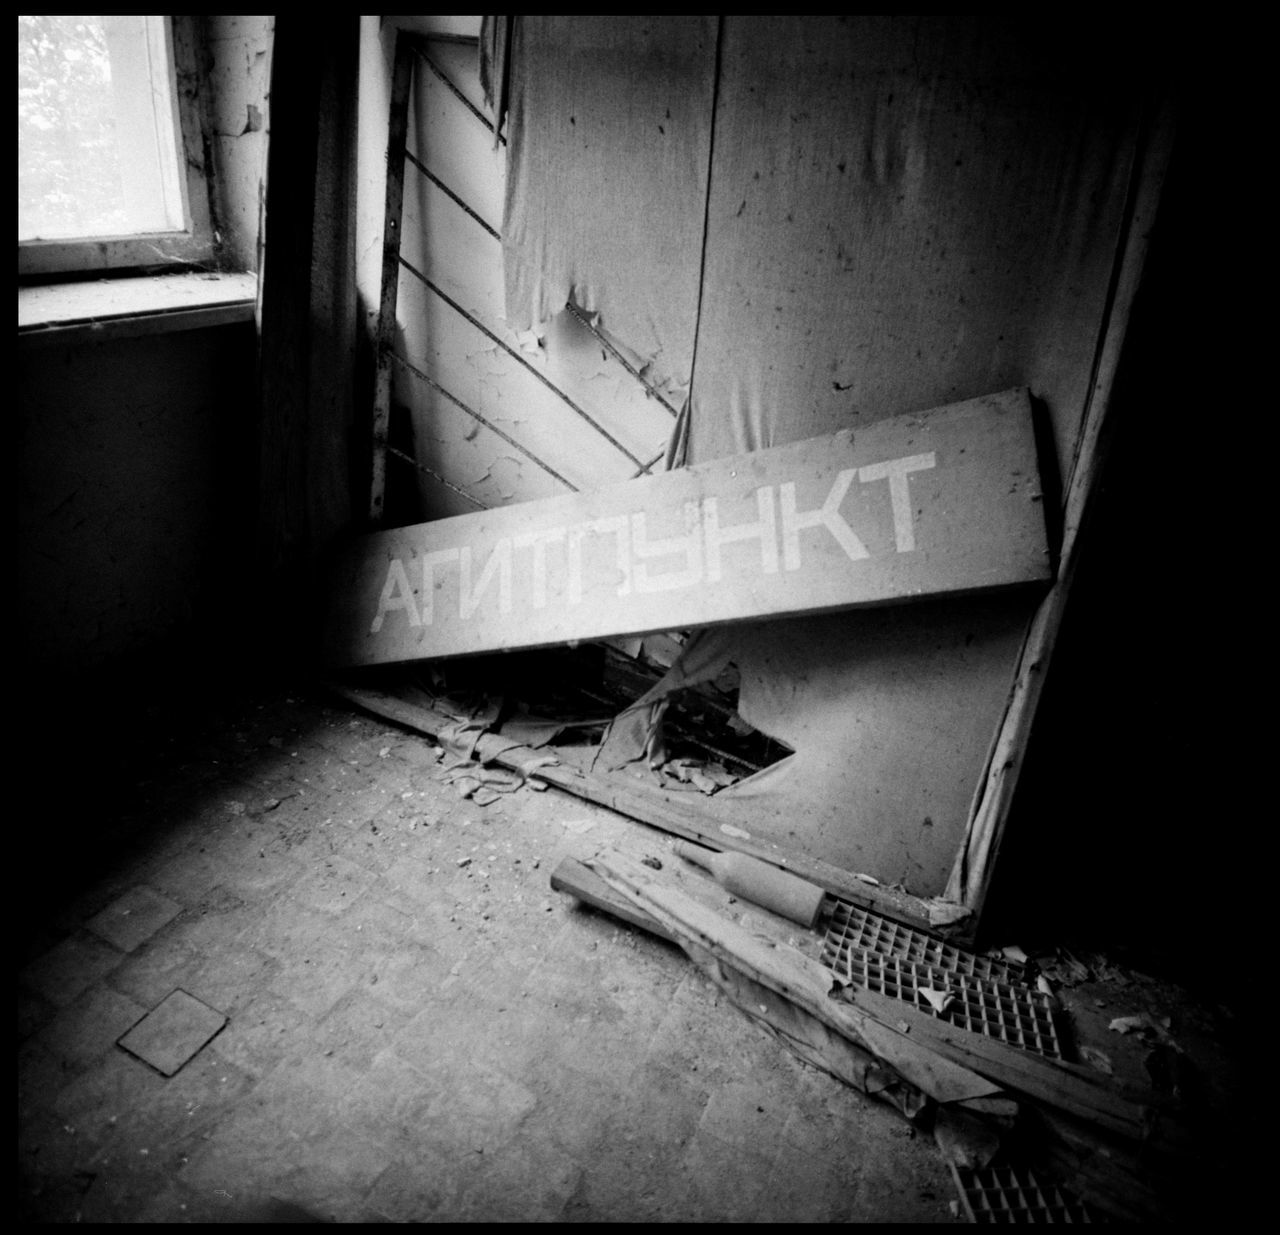 The pedeatric department of the abandonded hospital in Pripyat Abandonded Abandonded Baby Cradly Abandonded Building Abandonded Hospital Analogue Photography Baby Cradle Black And White Photography Chernobyl Chernobyl Catastrophy Chernobyl Exclusion Zone Clinic Cyrilic Death Eerie Clinic Indoors  No People Nuclear Blast Pediatrics Pot Pripyat Pripyat Hospital Scary Hospital Soviet Union Spooky Hospital White Wash The Photojournalist - 2017 EyeEm Awards